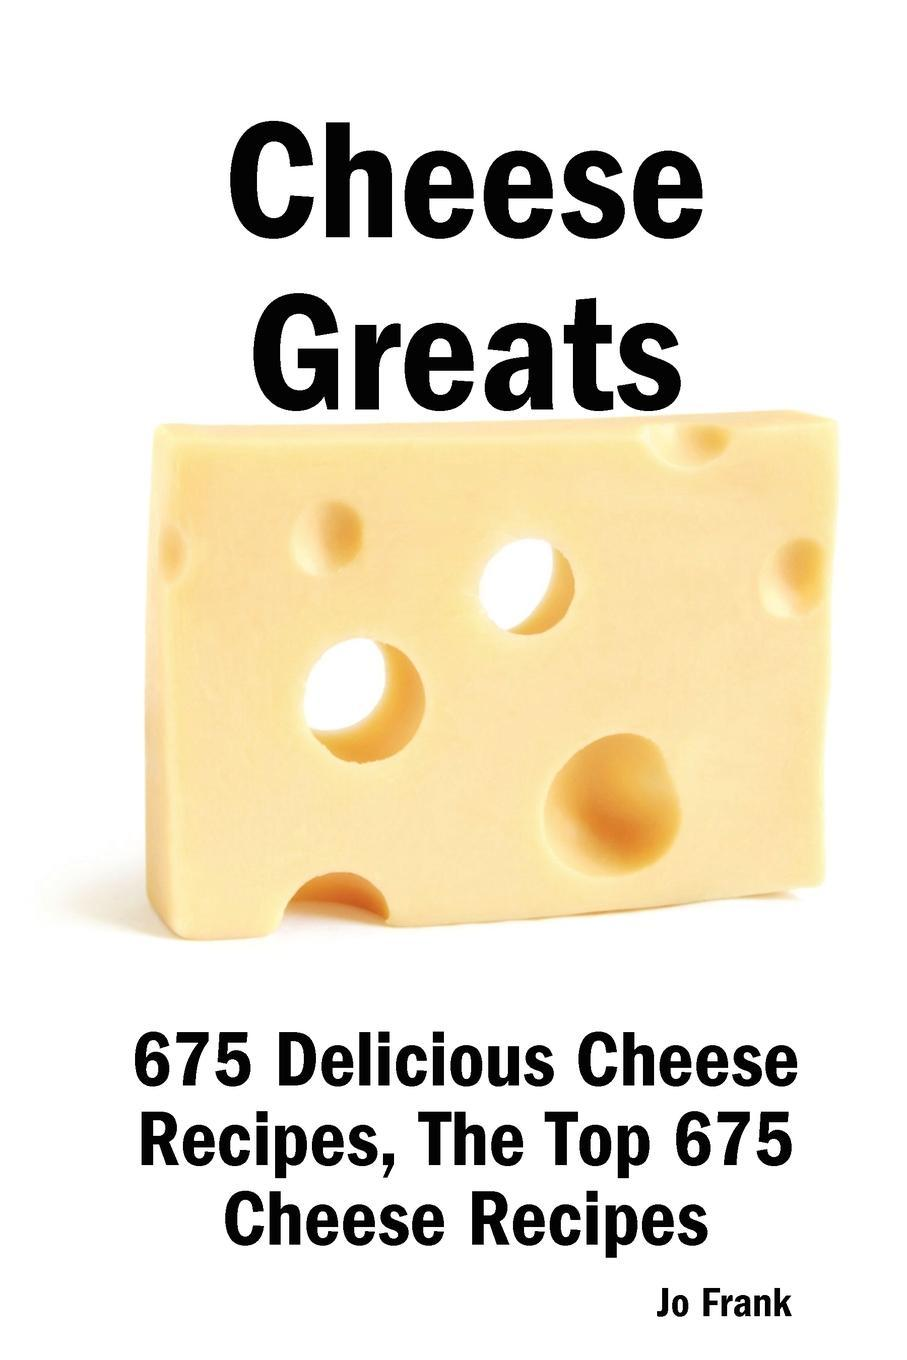 Cheese Greats: 675 Delicious Cheese Recipes - From Almond Cheese Horseshoe to Zucchini Cake with Cream Cheese Frosting